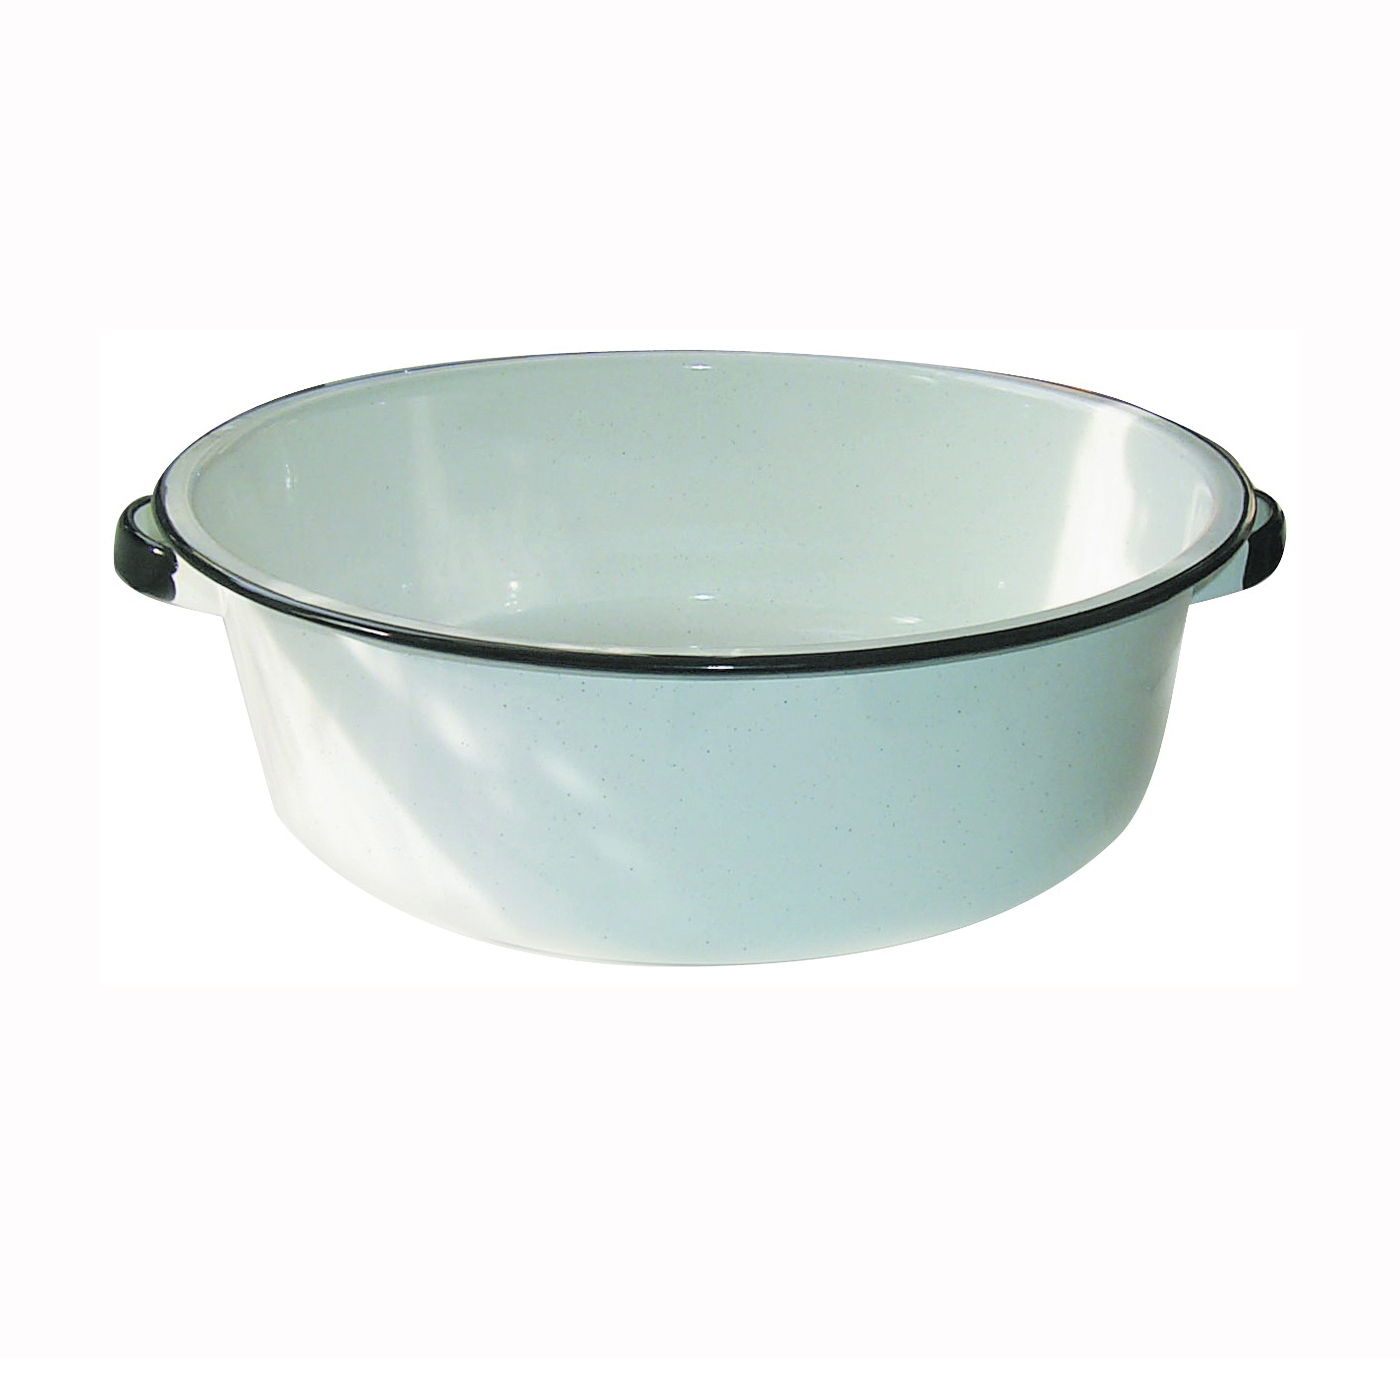 Picture of Granite Ware F6416-4 Dish Pan with Handle, 15 qt Volume, Steel, White